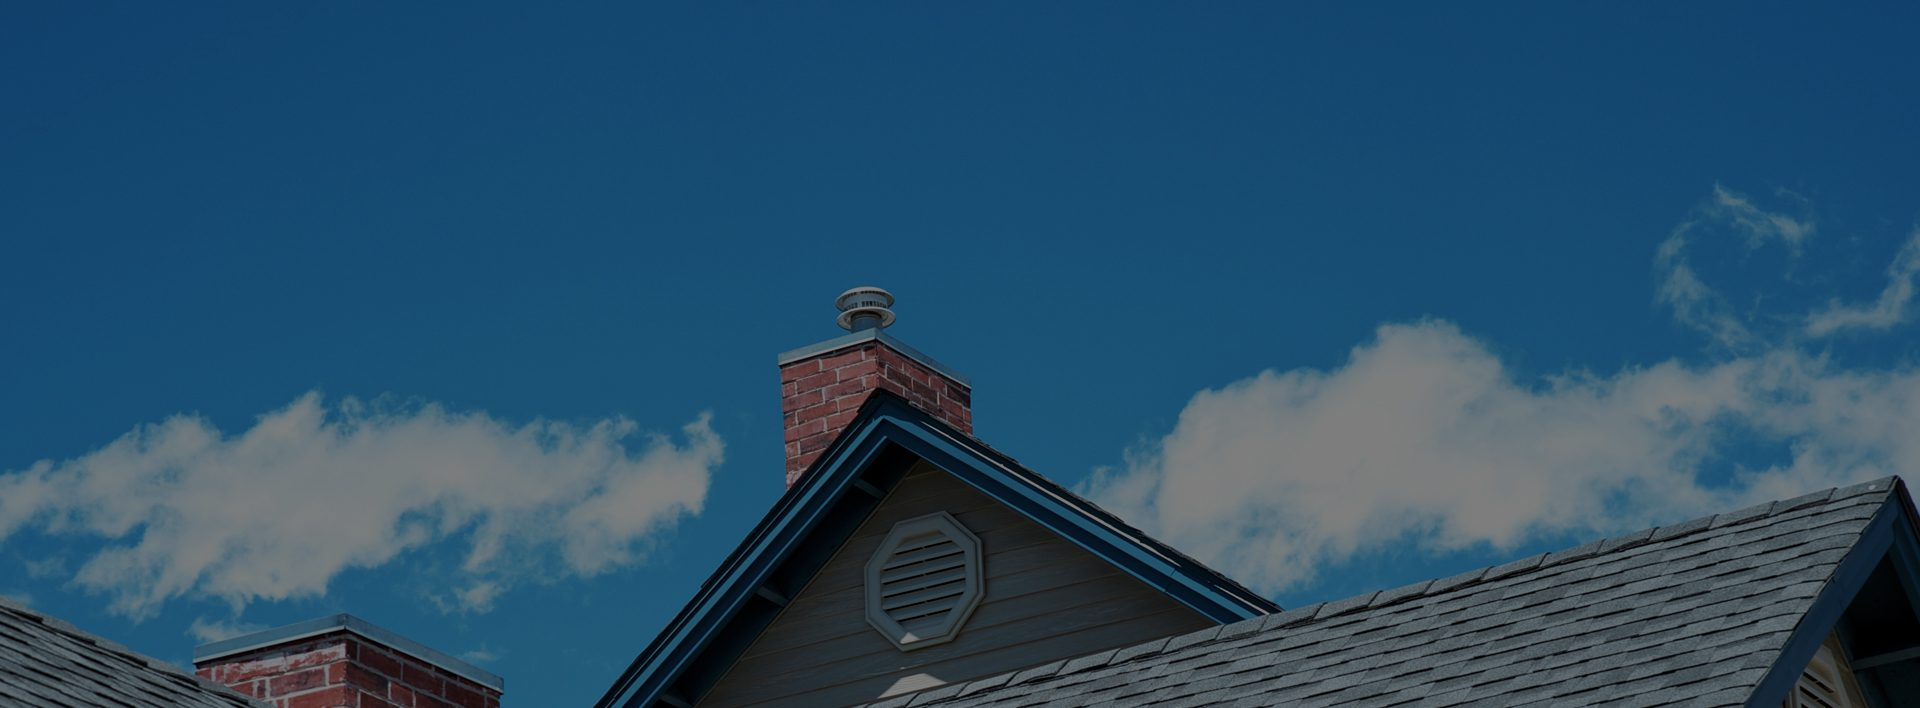 Top of a house with a chimney